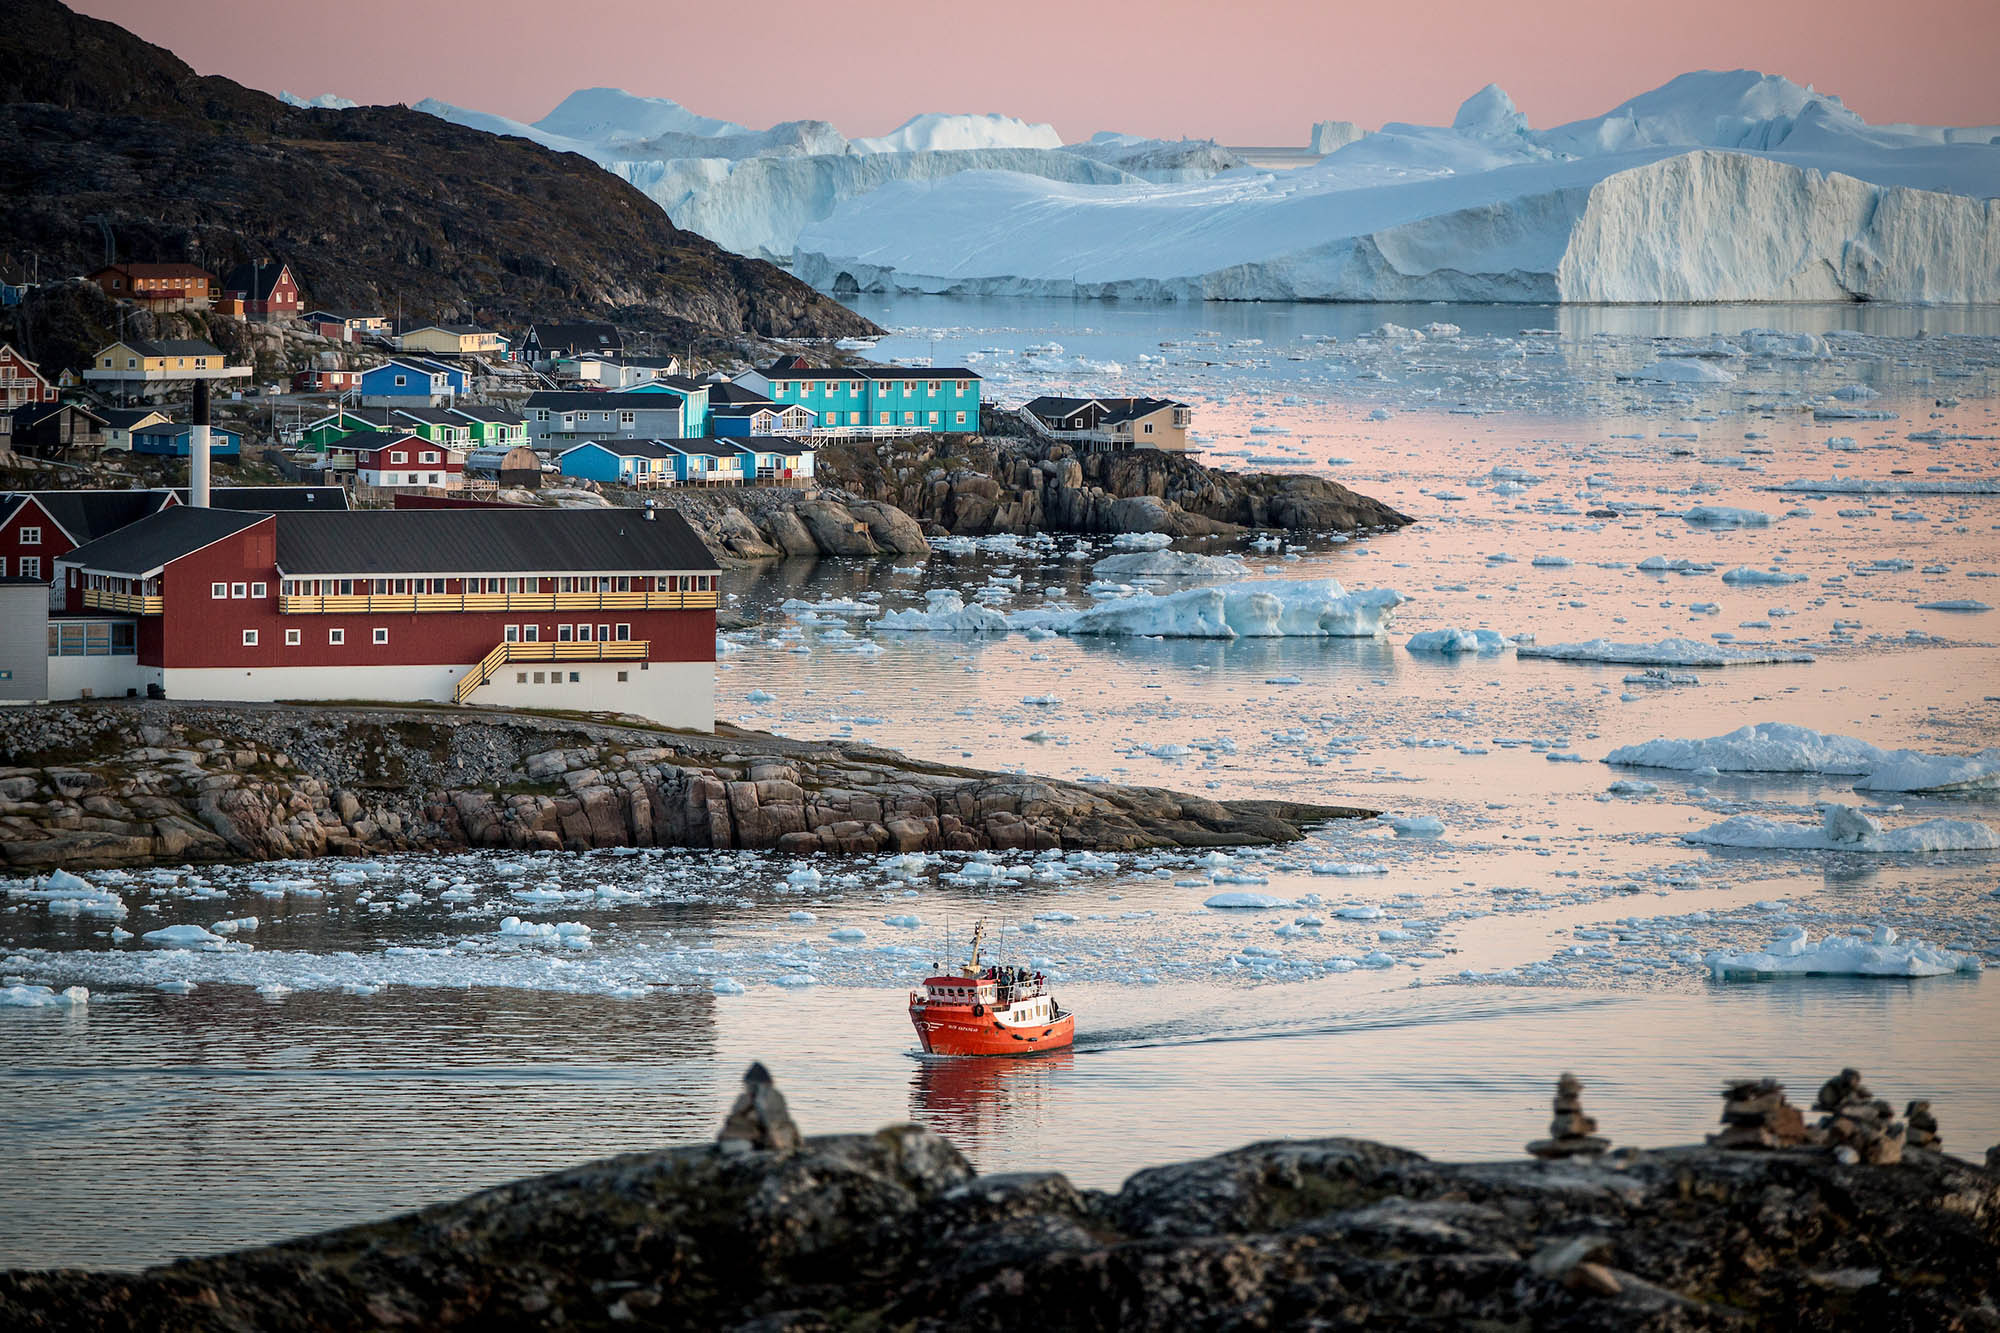 Visit Greenland from Iceland - Photo by Mads Pihl - Visit Greenland